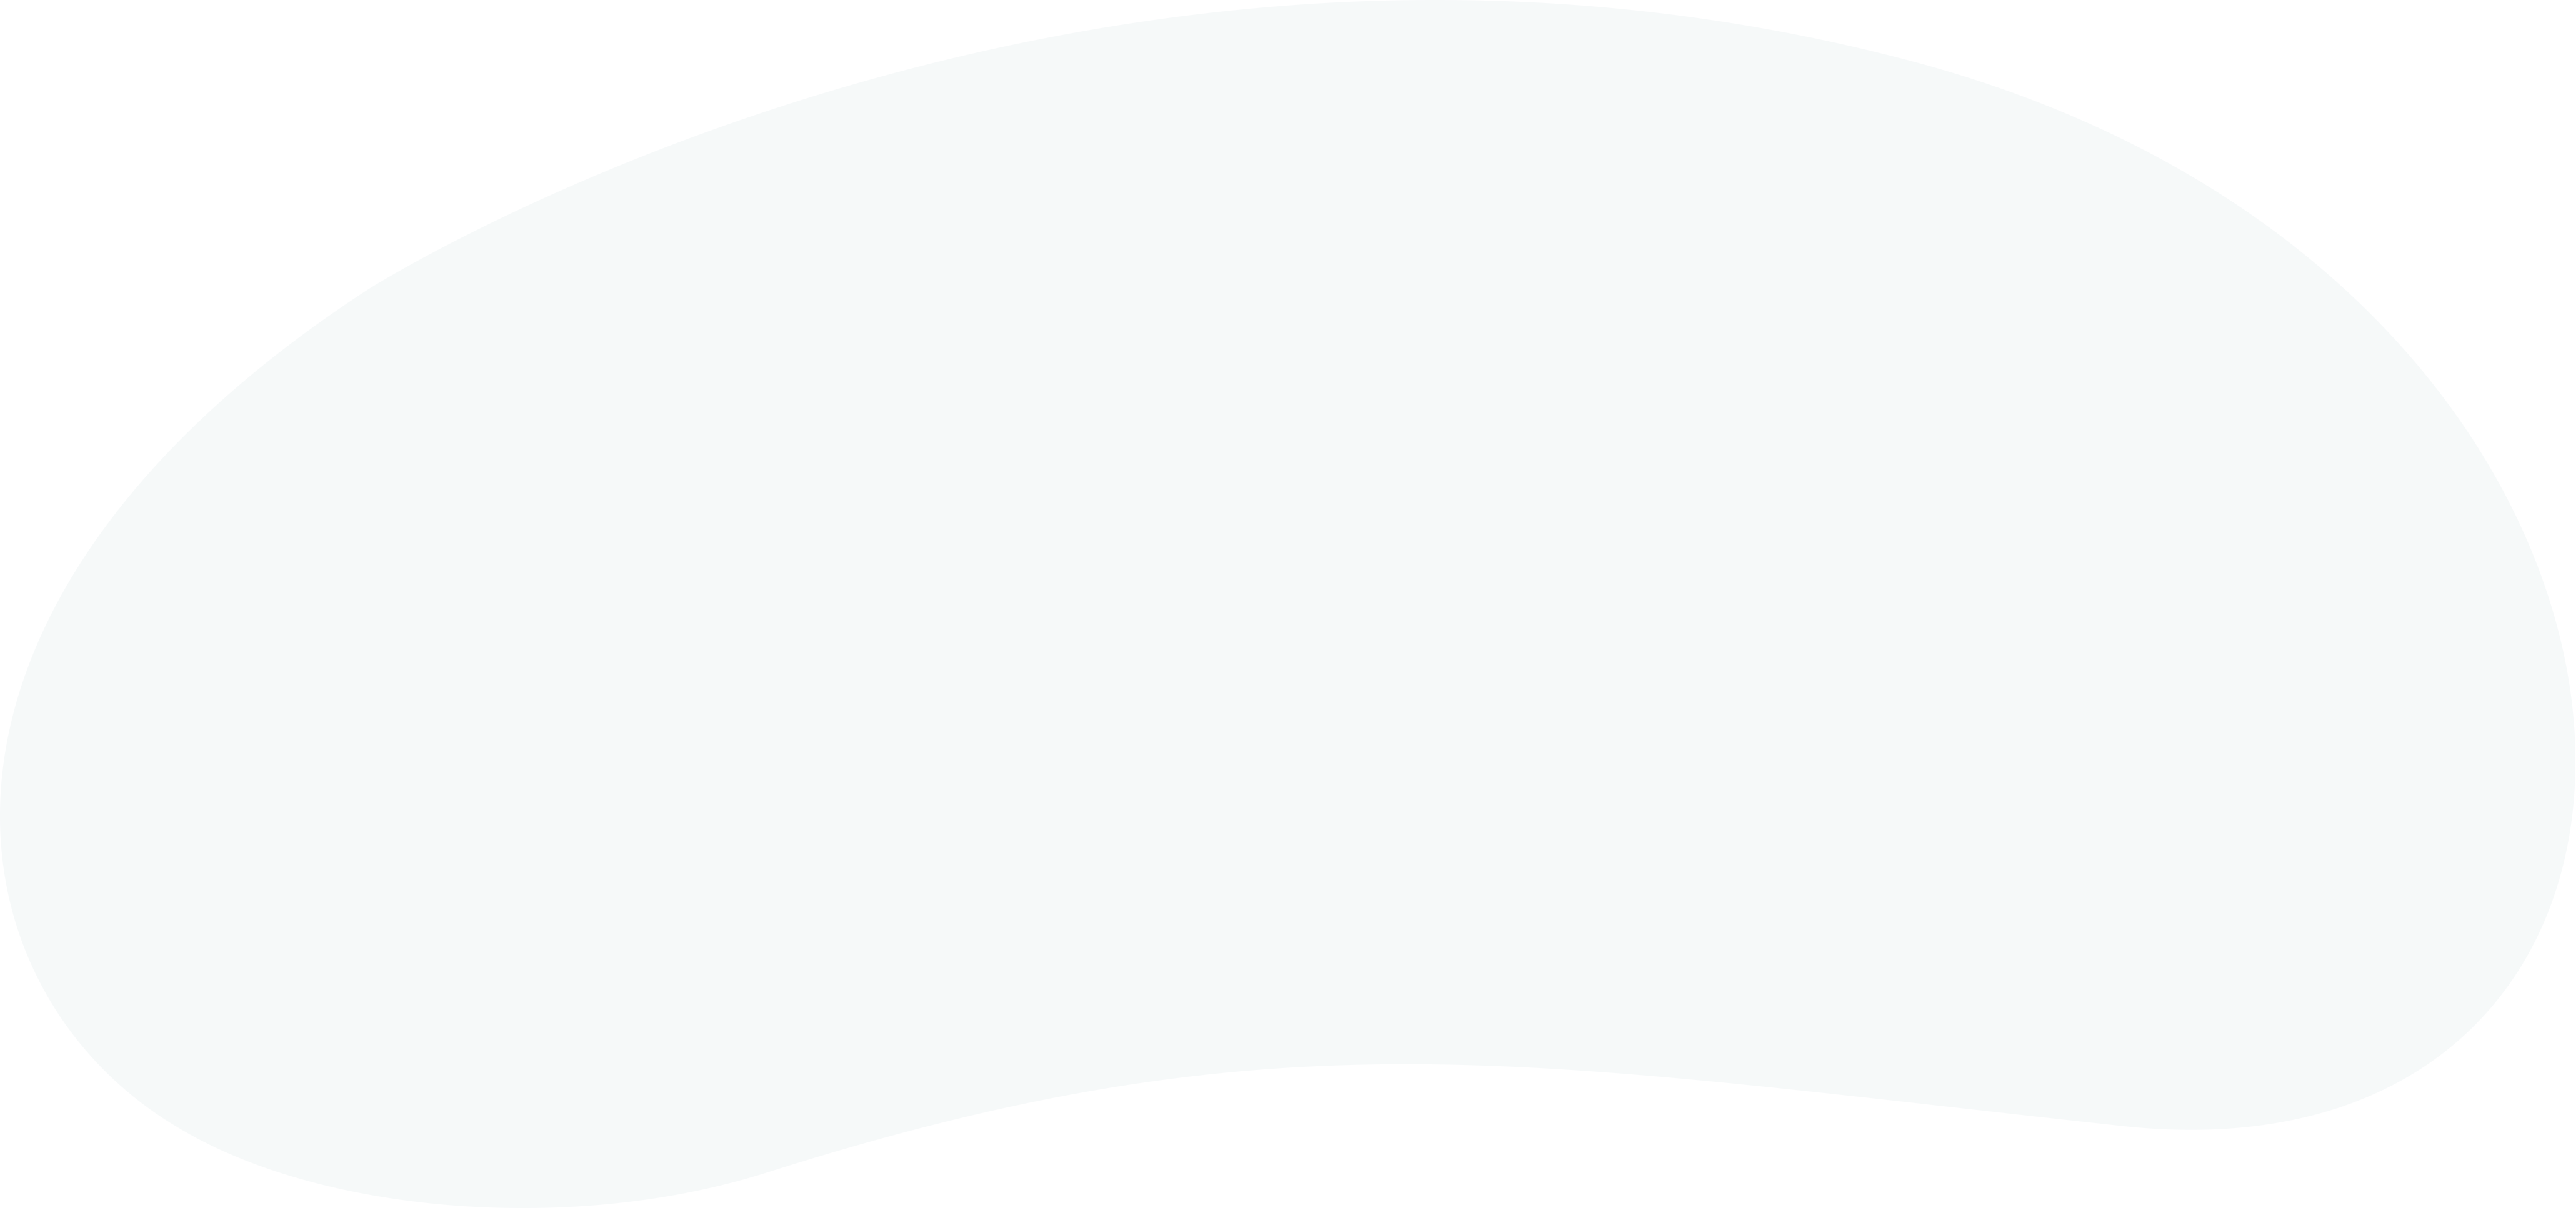 Gray outline for text box